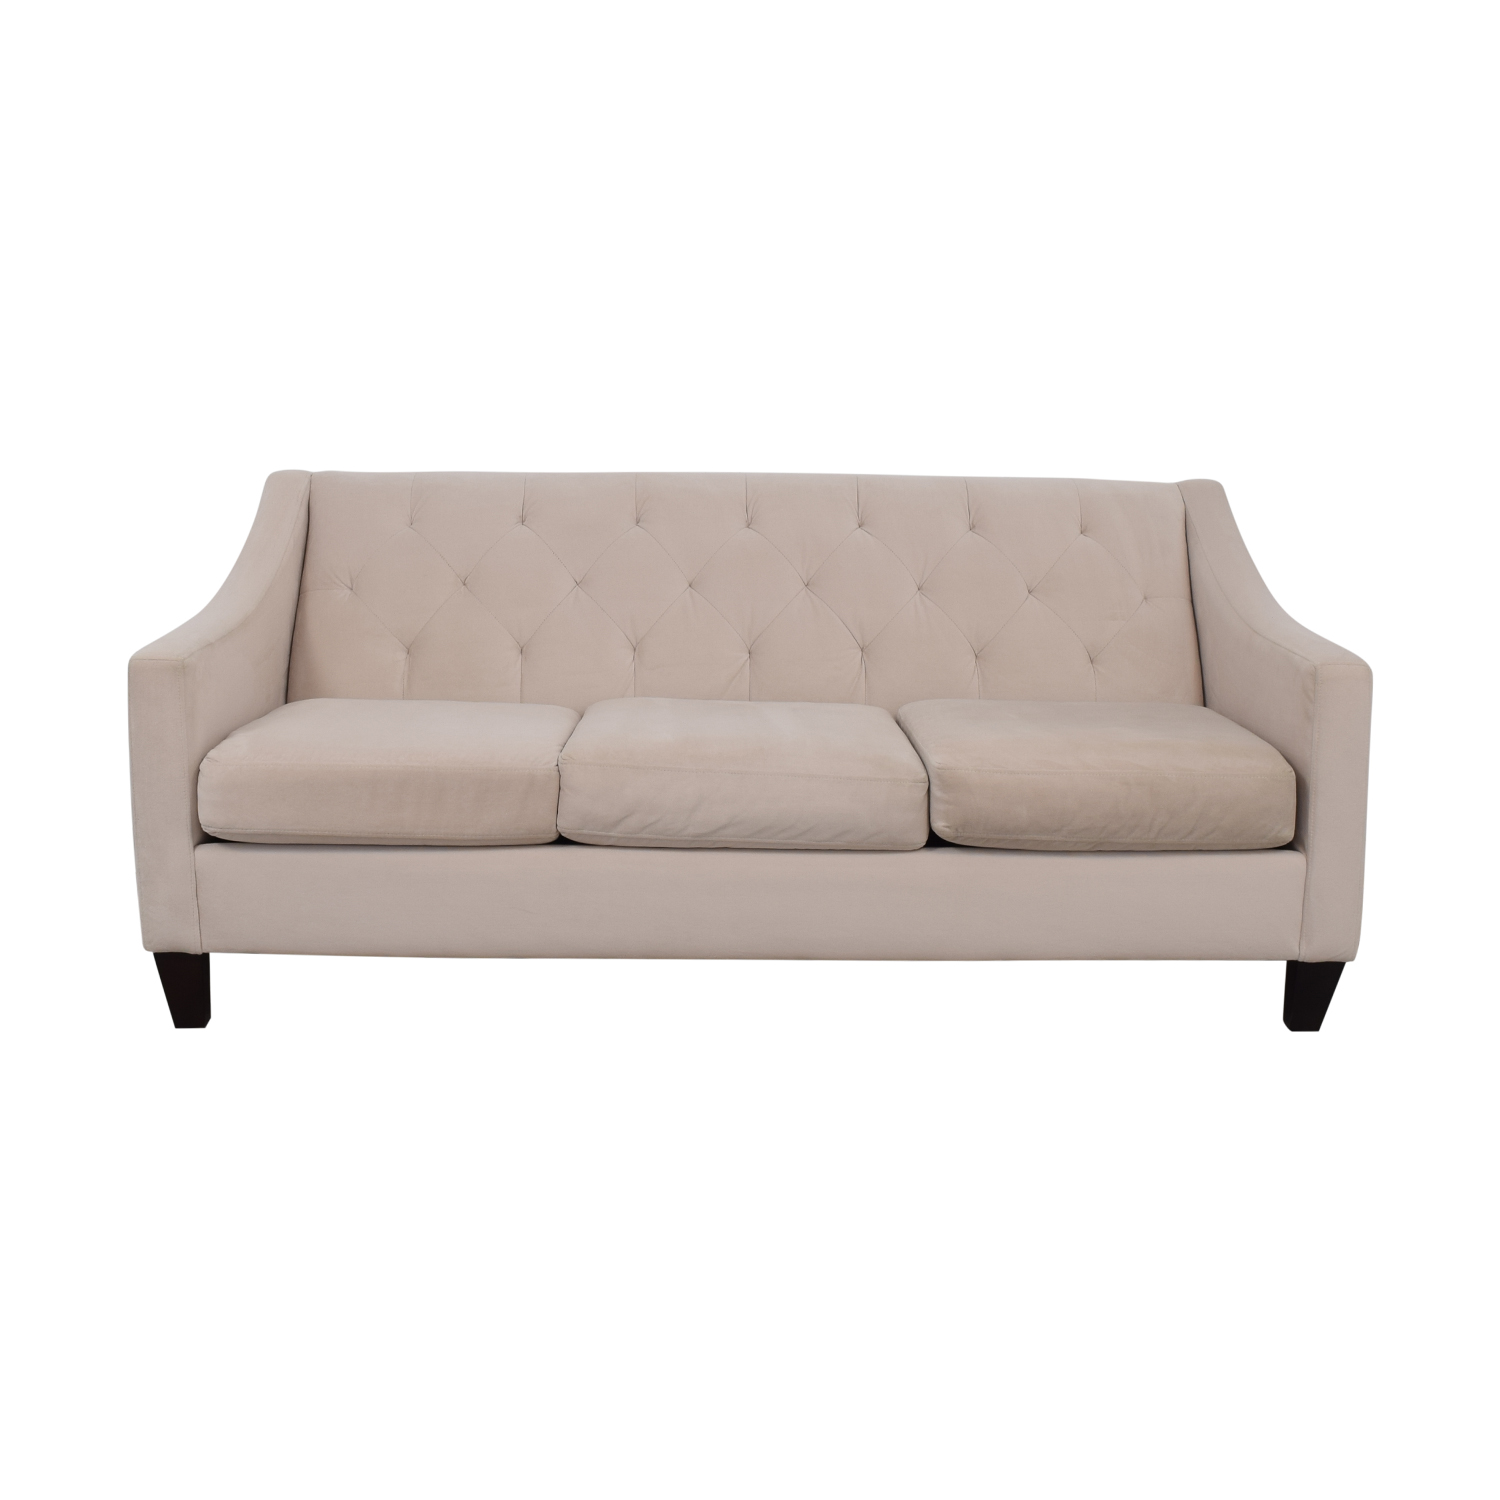 Max Home Furniture Max Home Furniture White Tufted Microfiber Three-Cushion Couch Classic Sofas